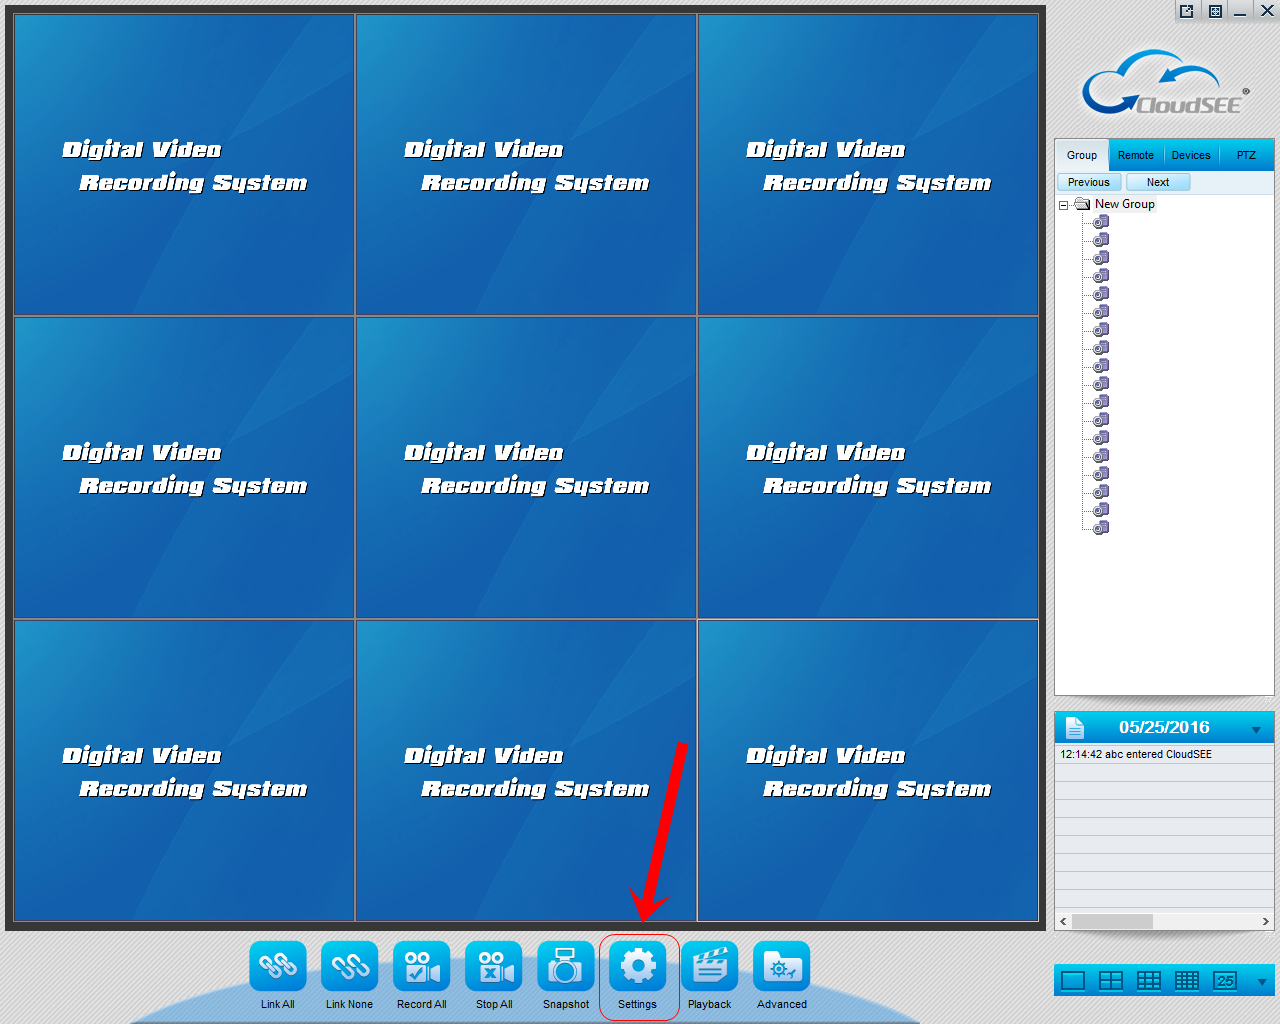 CloudSEE CCTV Camera PC CMS Software Settings and User Manual